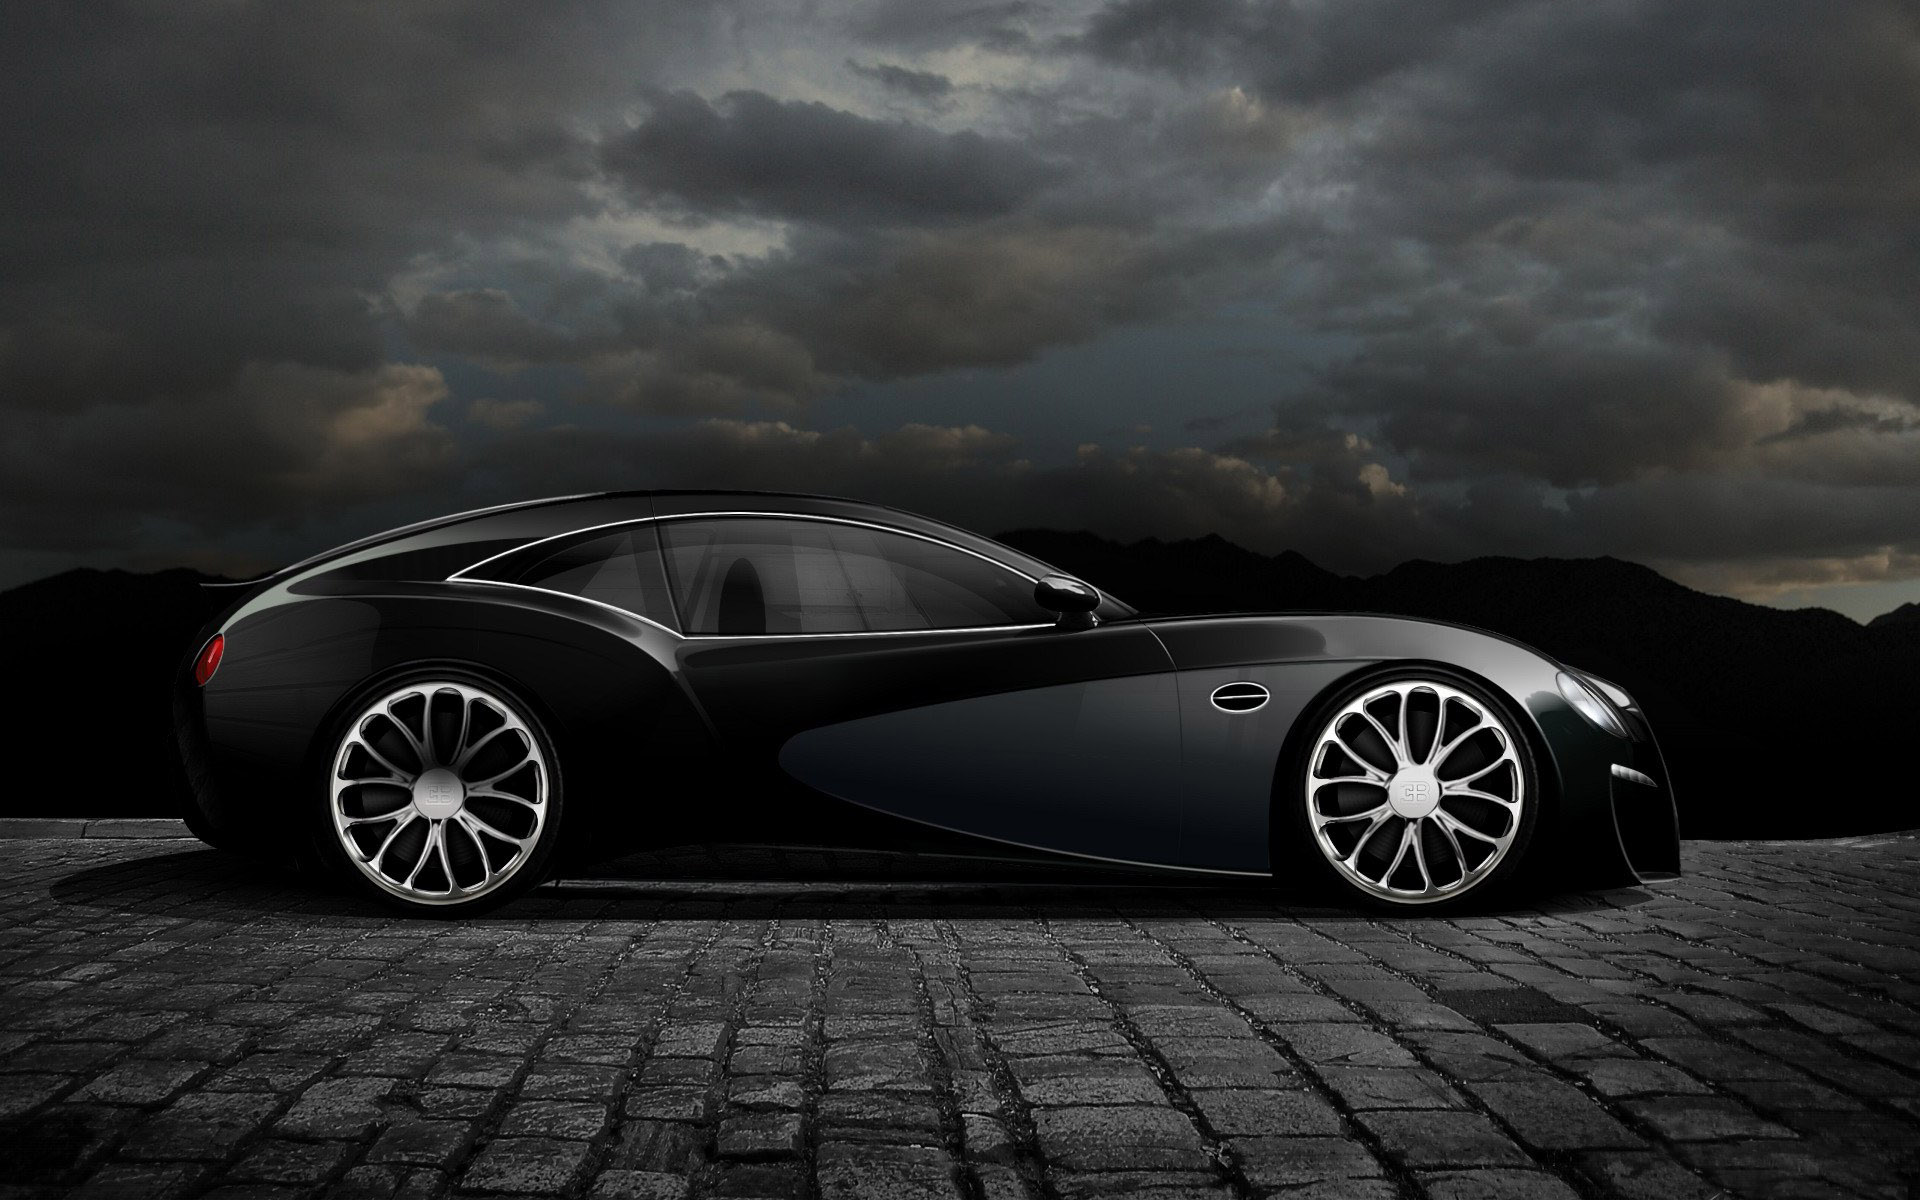 +400 cars dark wallpaper 4k is a free android app that has a large variety of sizes as well as full hd (4k) wallpapers and backgrounds. Black Car Wallpaper 1920x1200 75782